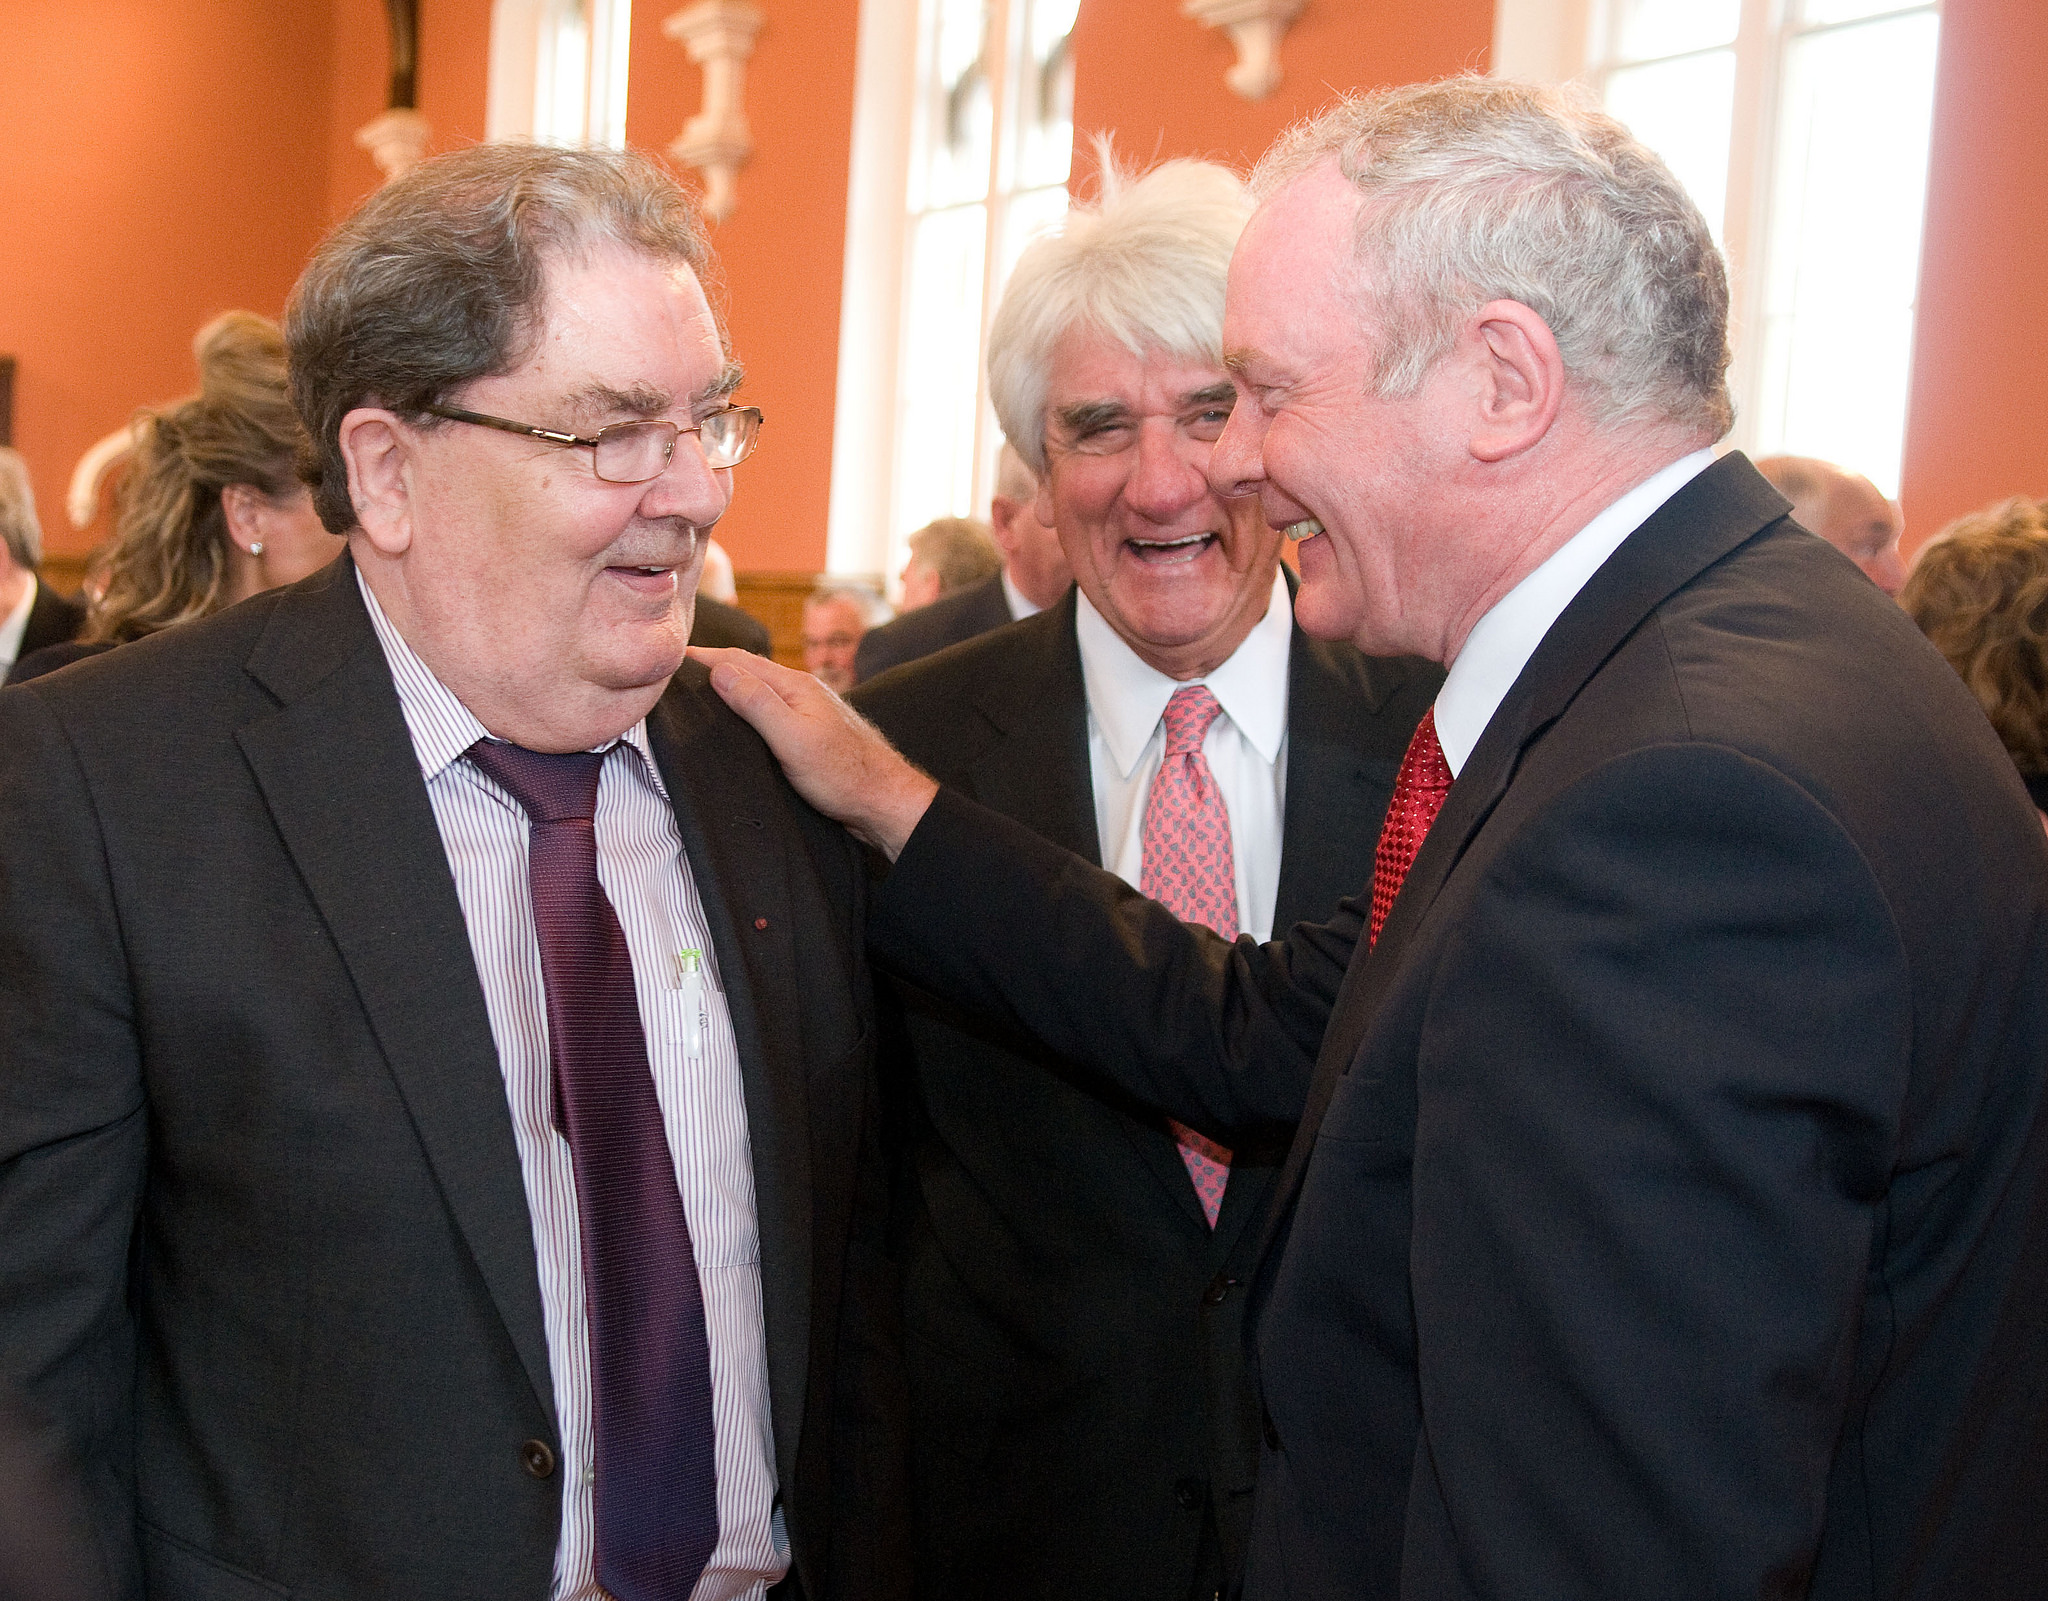 Ulster Announces Funding Boost for Hume O'Neill Peace Chair